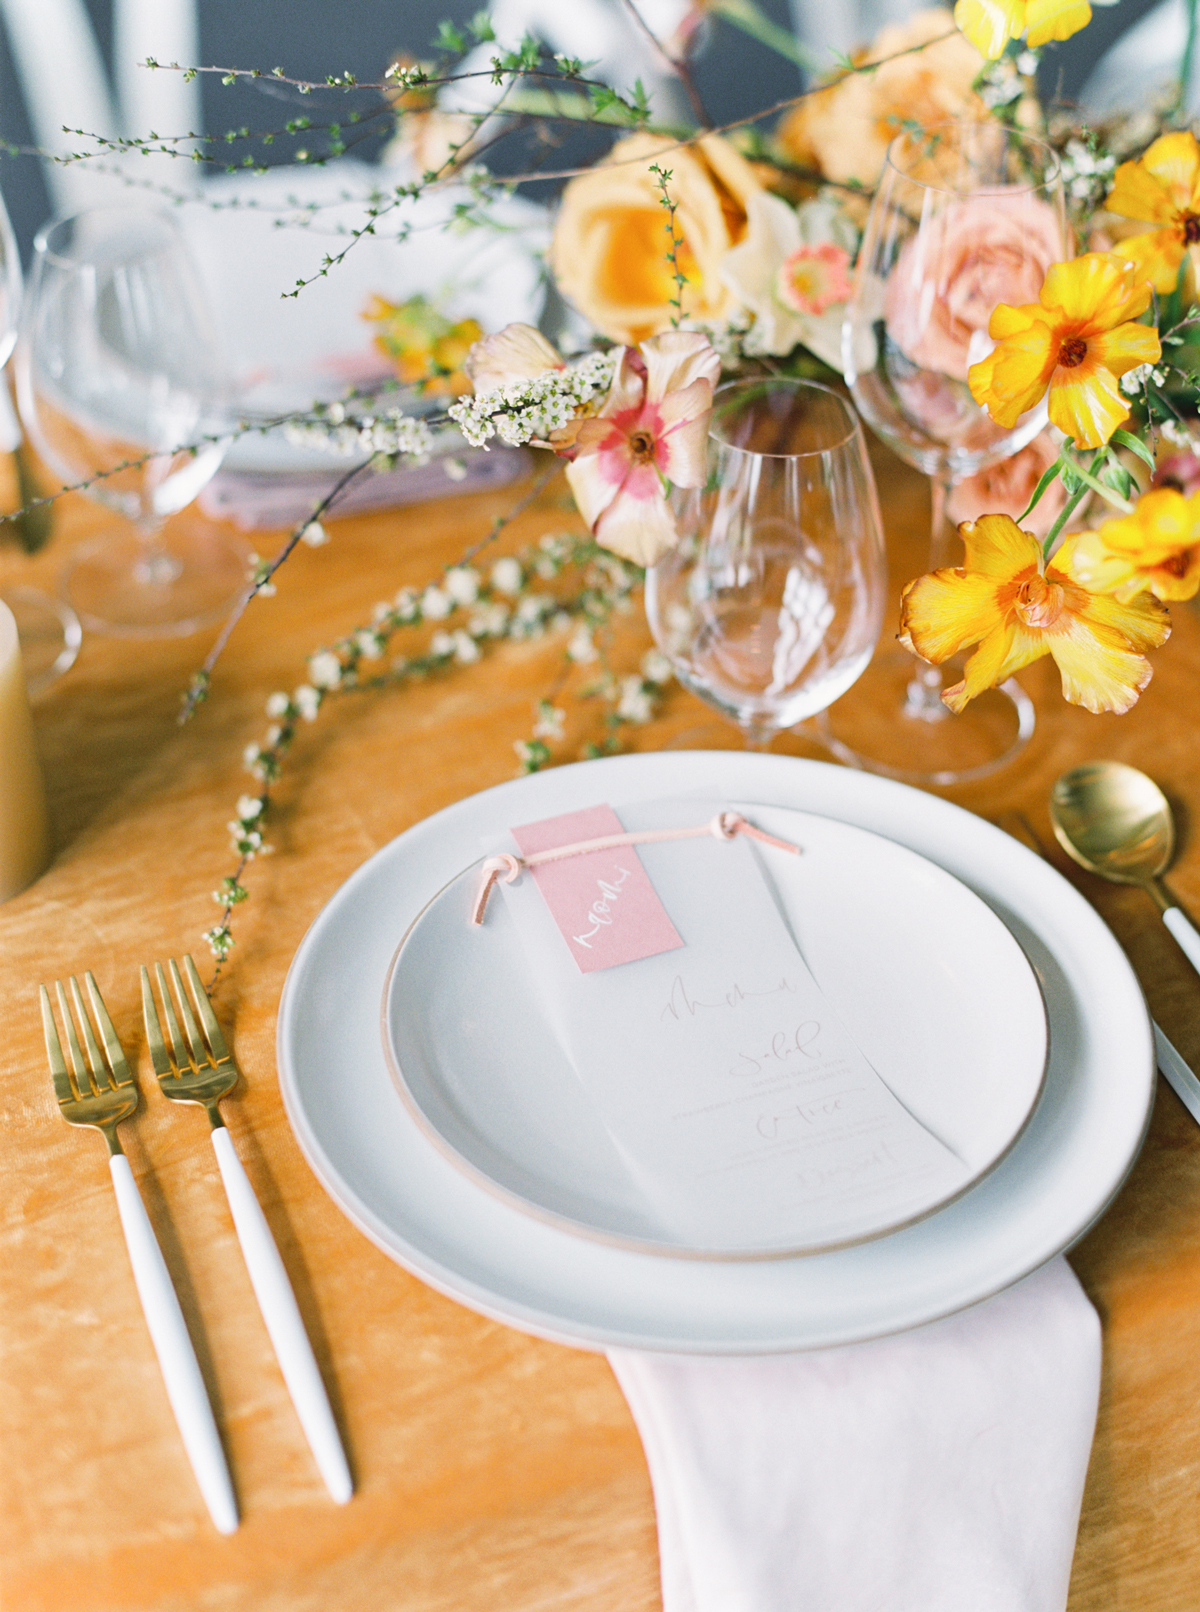 vellum menu with bright table setting